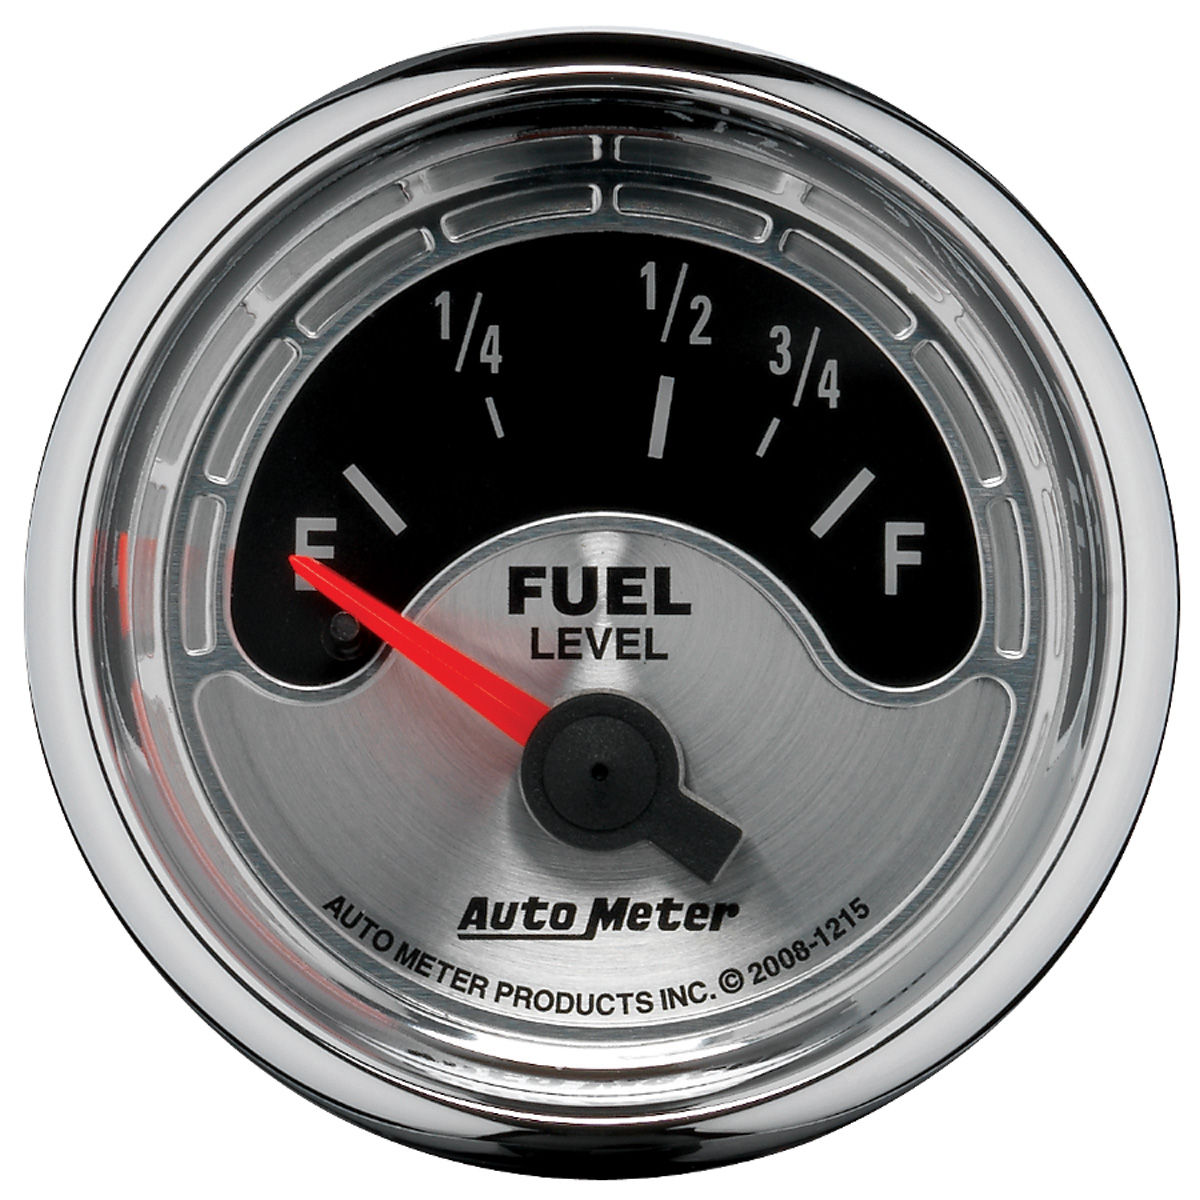 "Photo of Gauge, American Muscle Series 2-1/16"" fuel level(OHMS 73 empty/10 full)"